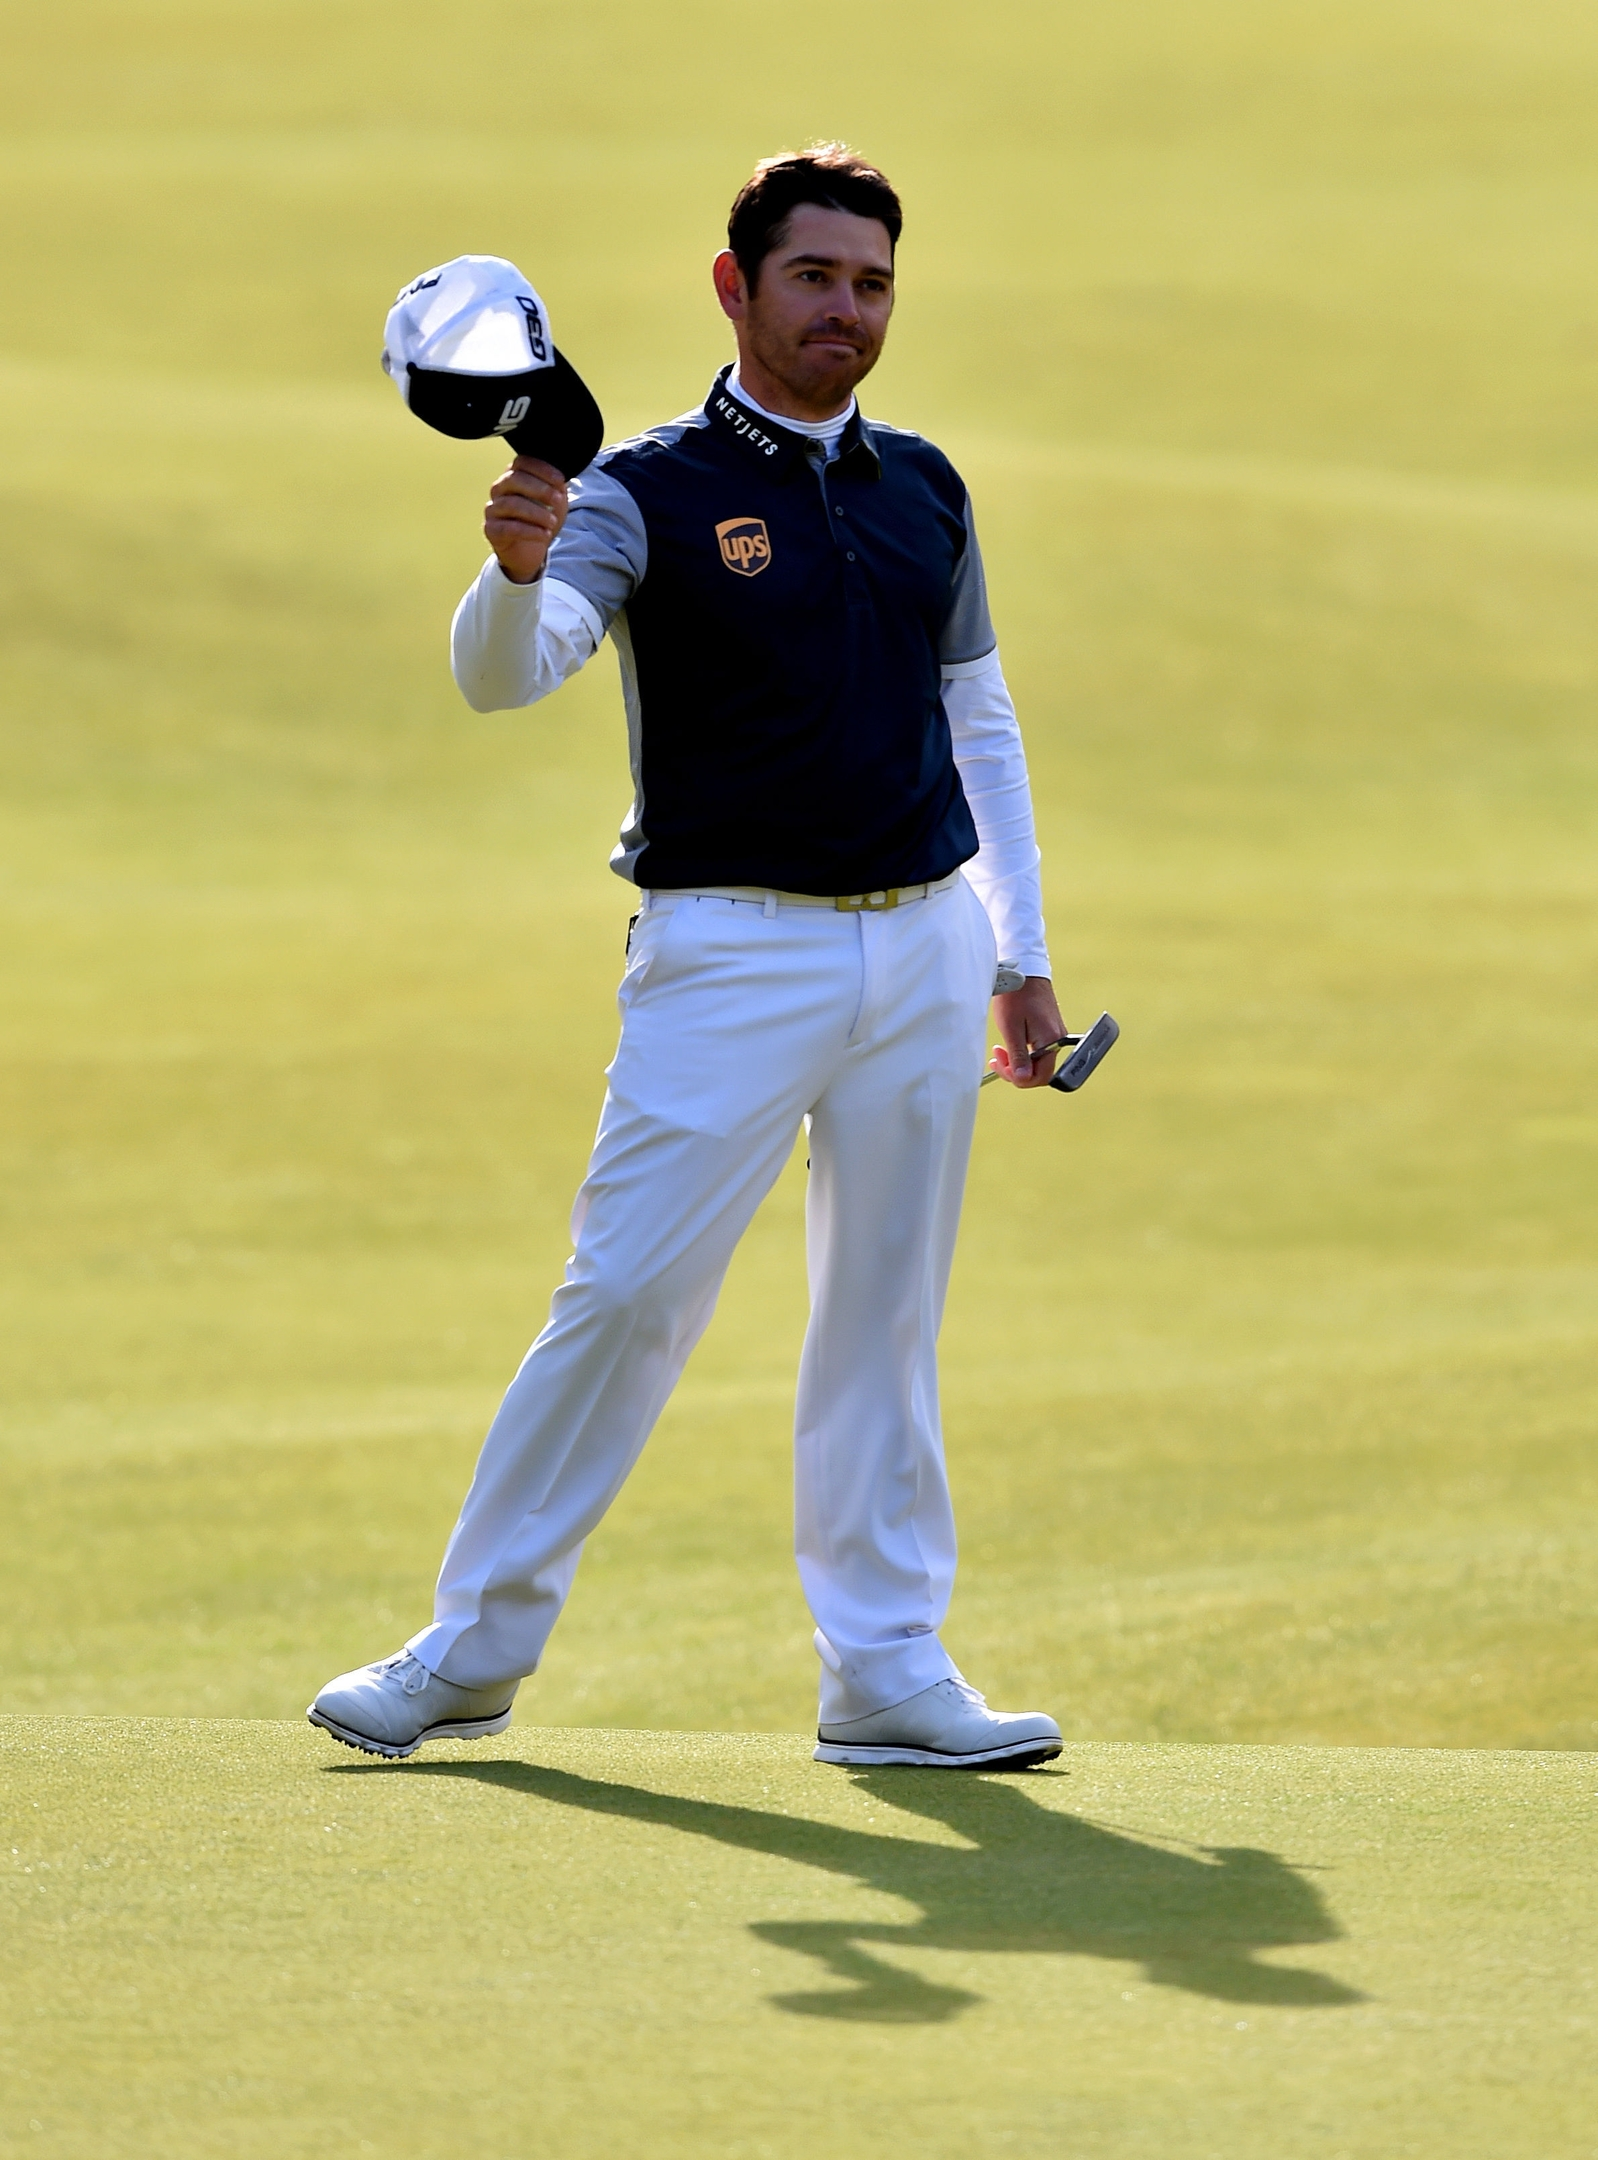 South Africa's Louis Oosthuizen celebrates his birdie putt on the 18th during day four of The Open Championship at St Andrews. Owen Humphreys/PA Wire.